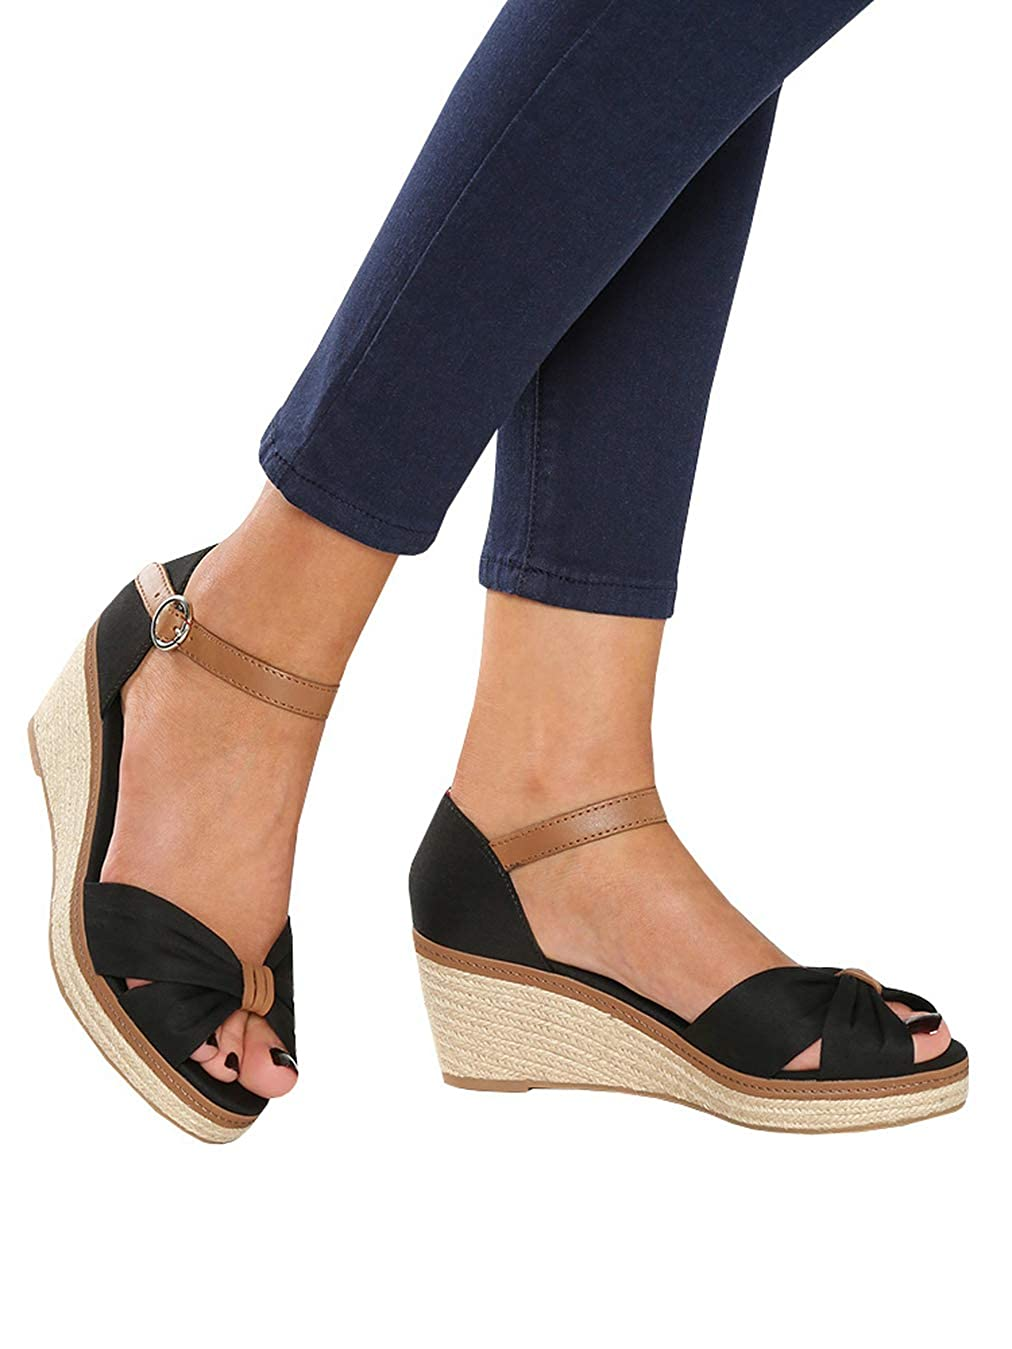 ec446ec5491 Ermonn Womens Wedge Espadrilles Platform Sandals Open Toe Buckle Ankle  Strap Summer Slingback Shoes